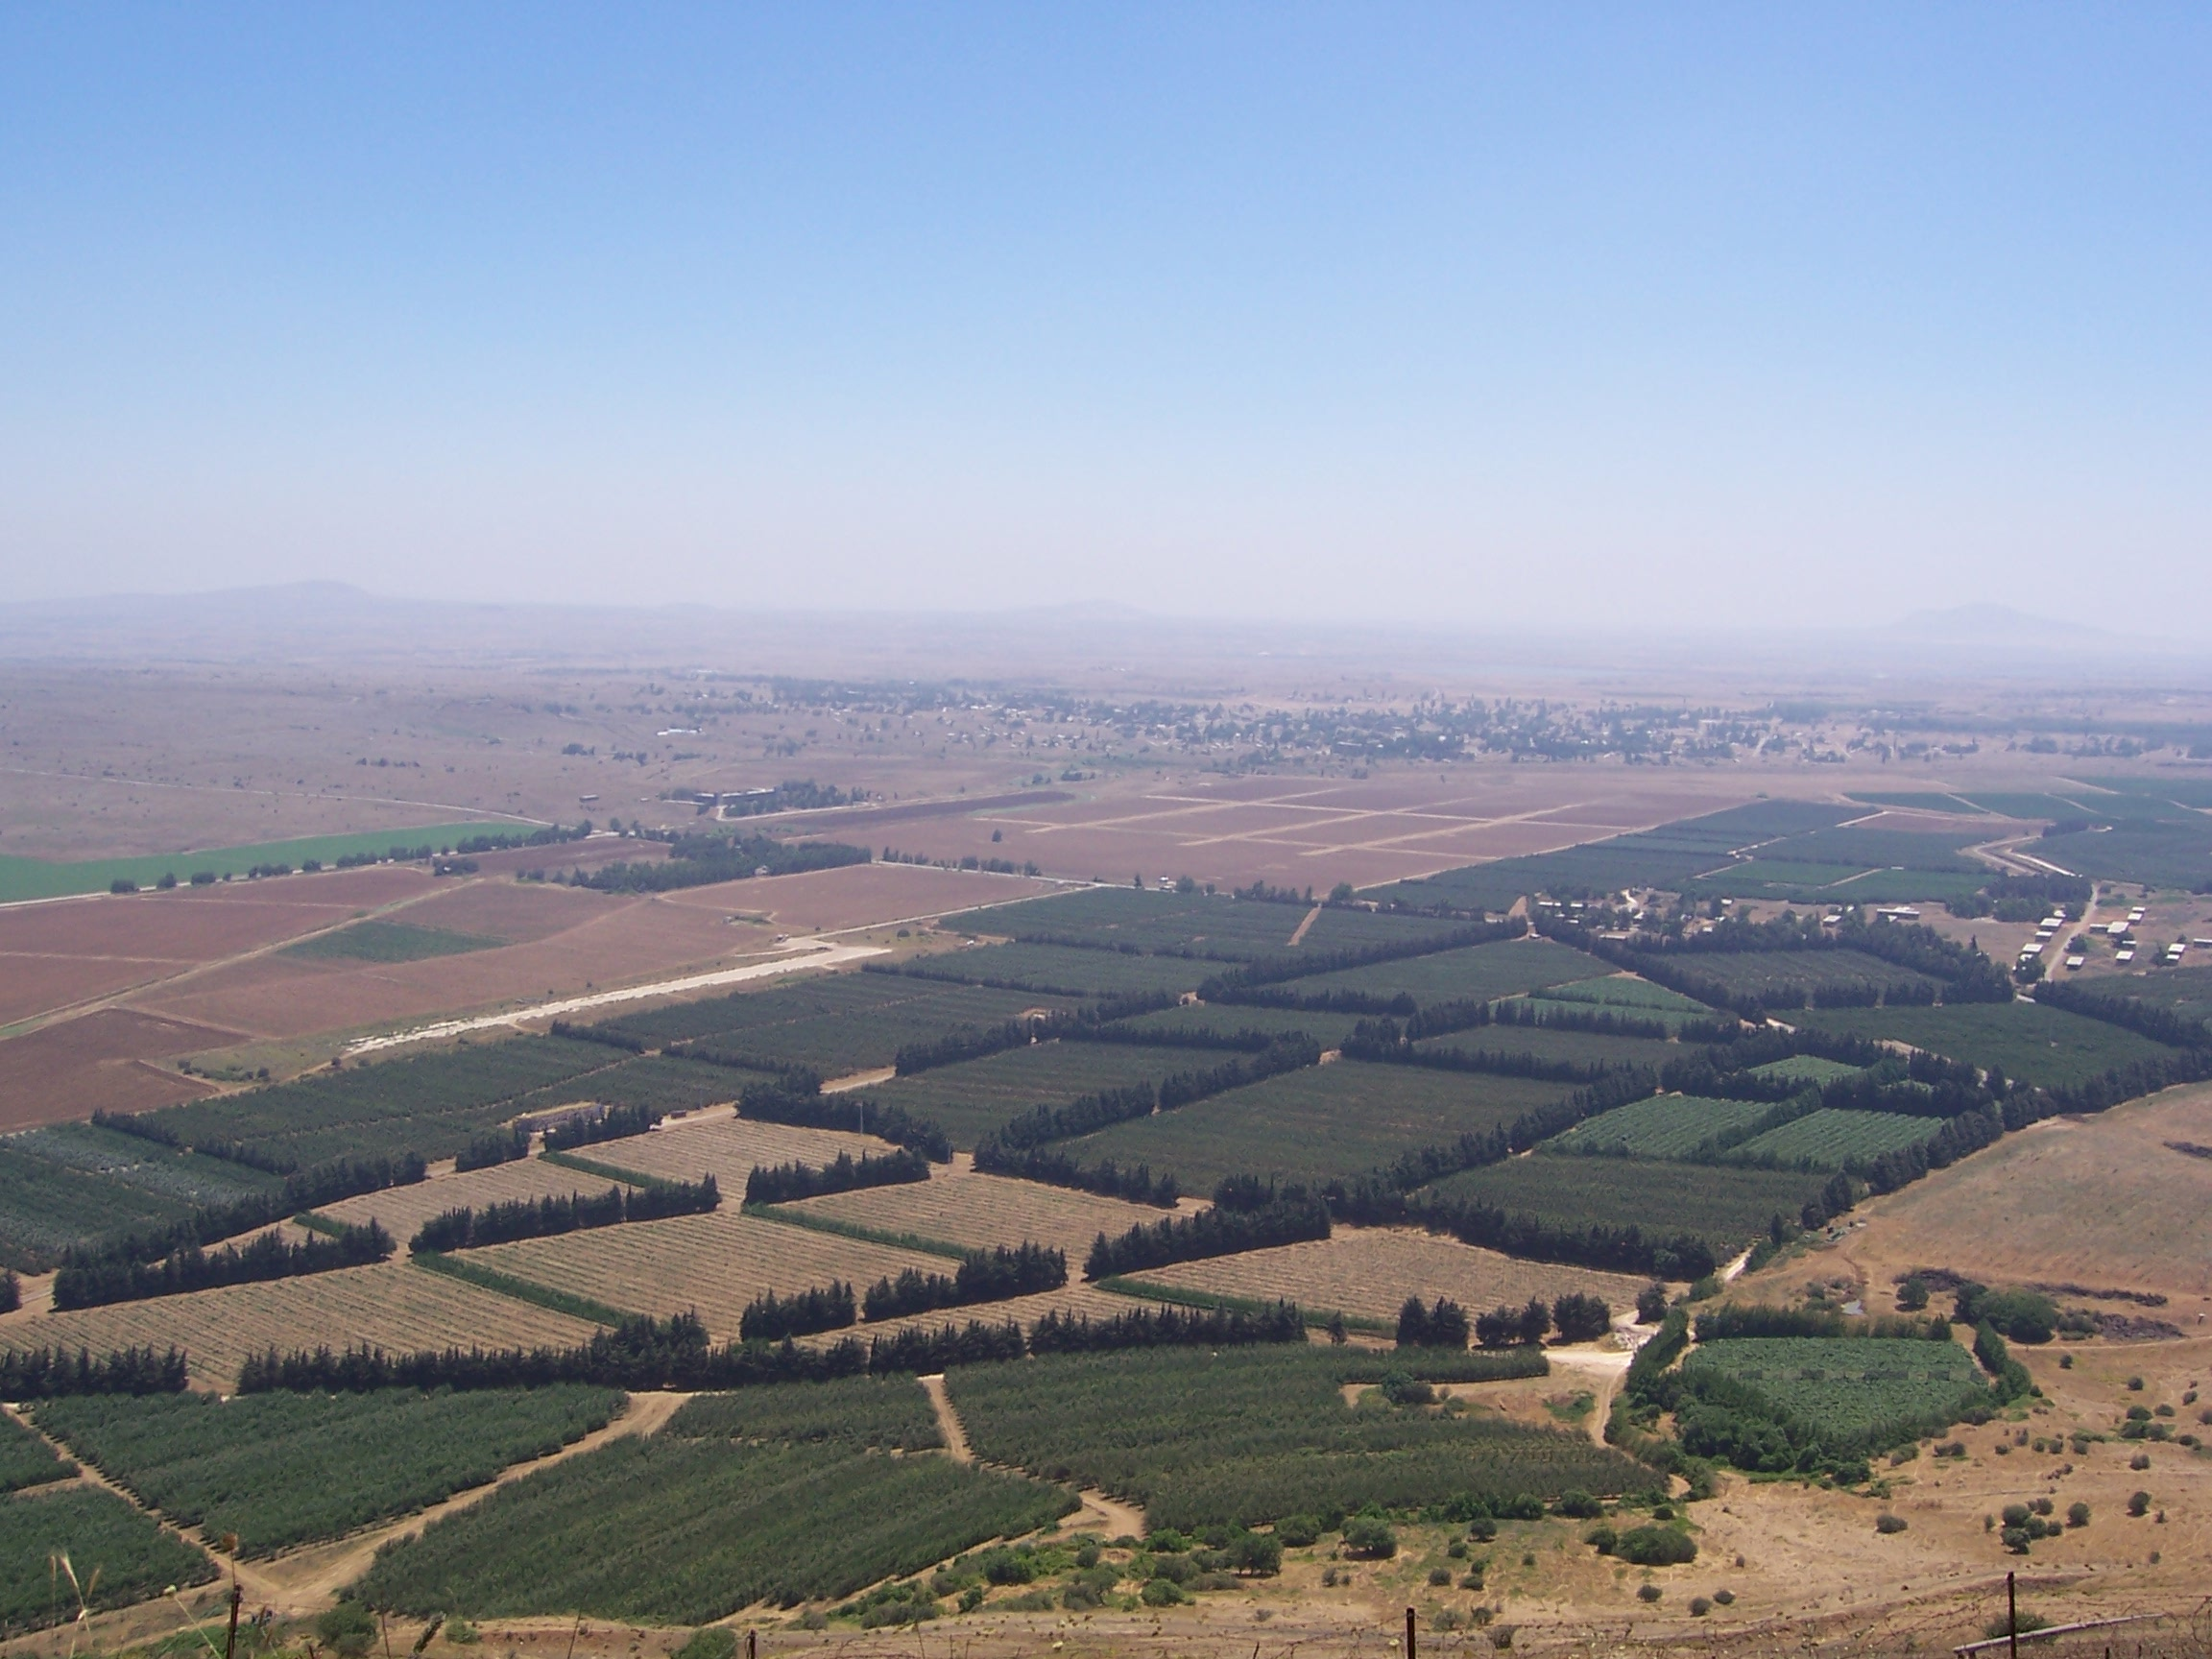 Aerial view of the Golan Heights